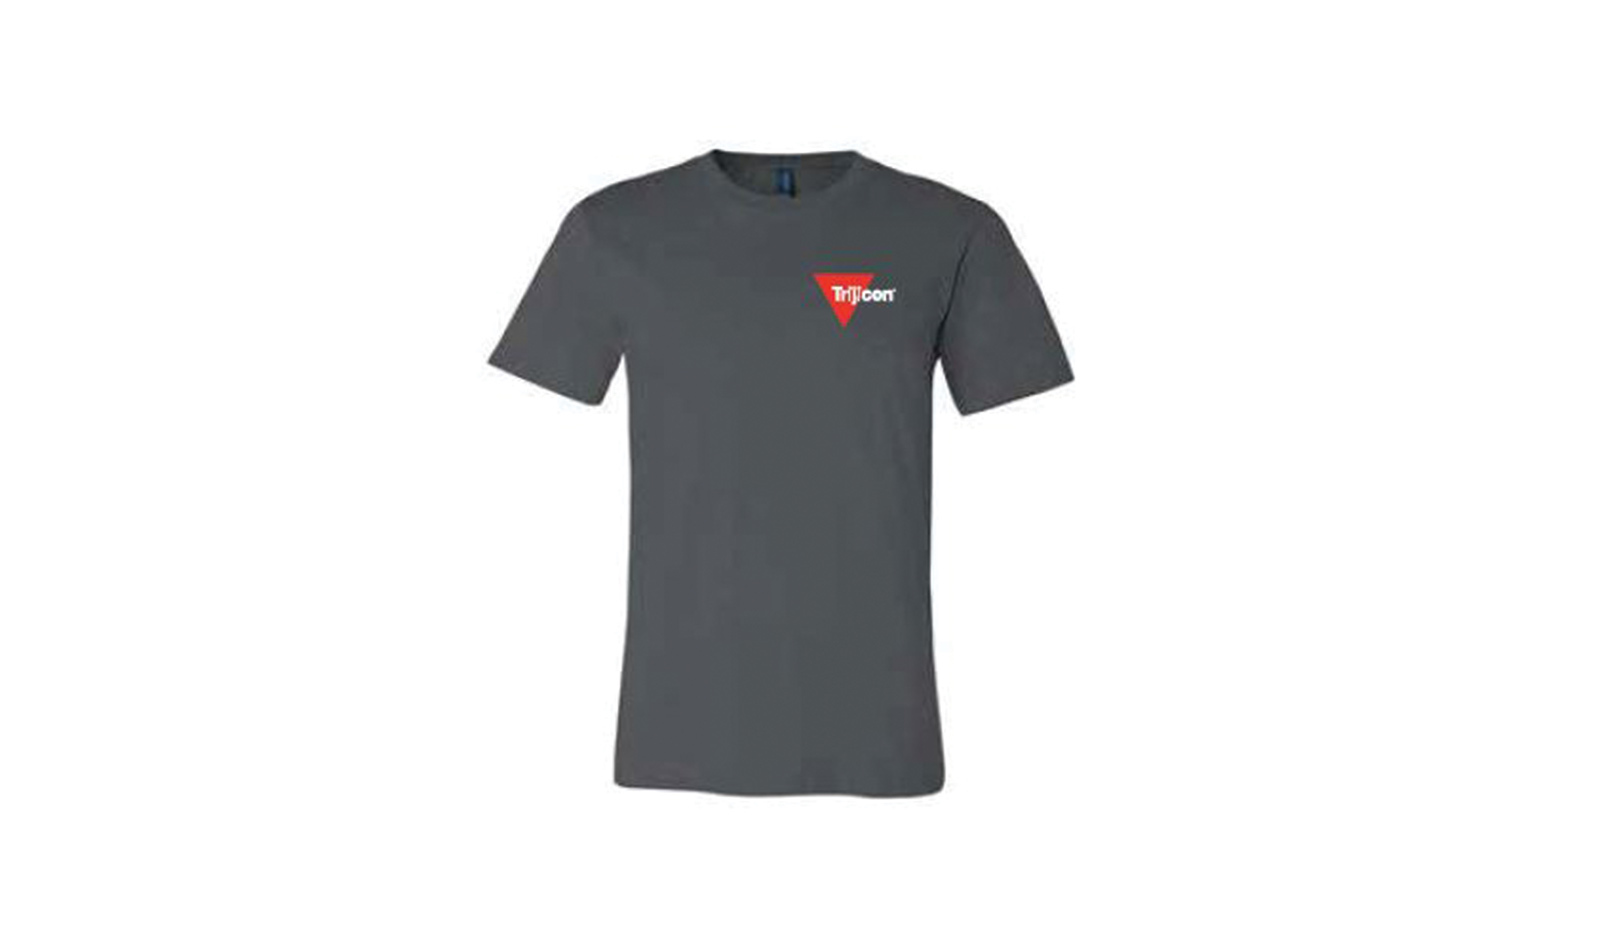 Trijicon<sup>®</sup> Jersey T-Shirt - Gray - LG